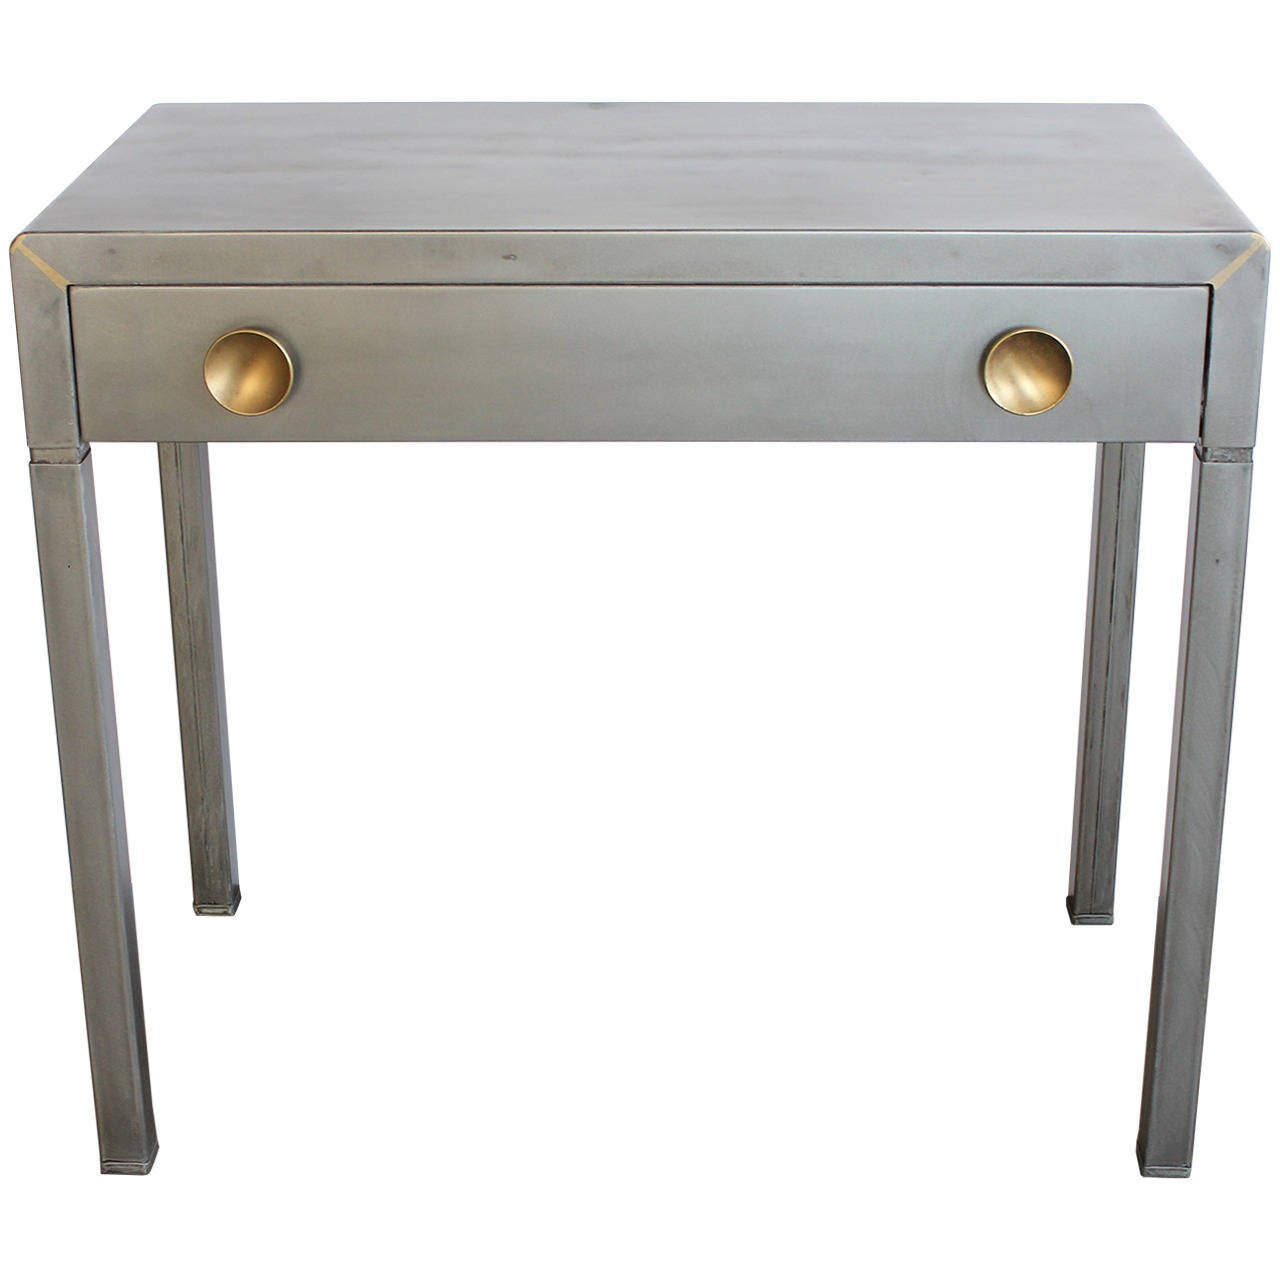 Stylish Desk stylish 1920s industrial metal desksimmons at 1stdibs